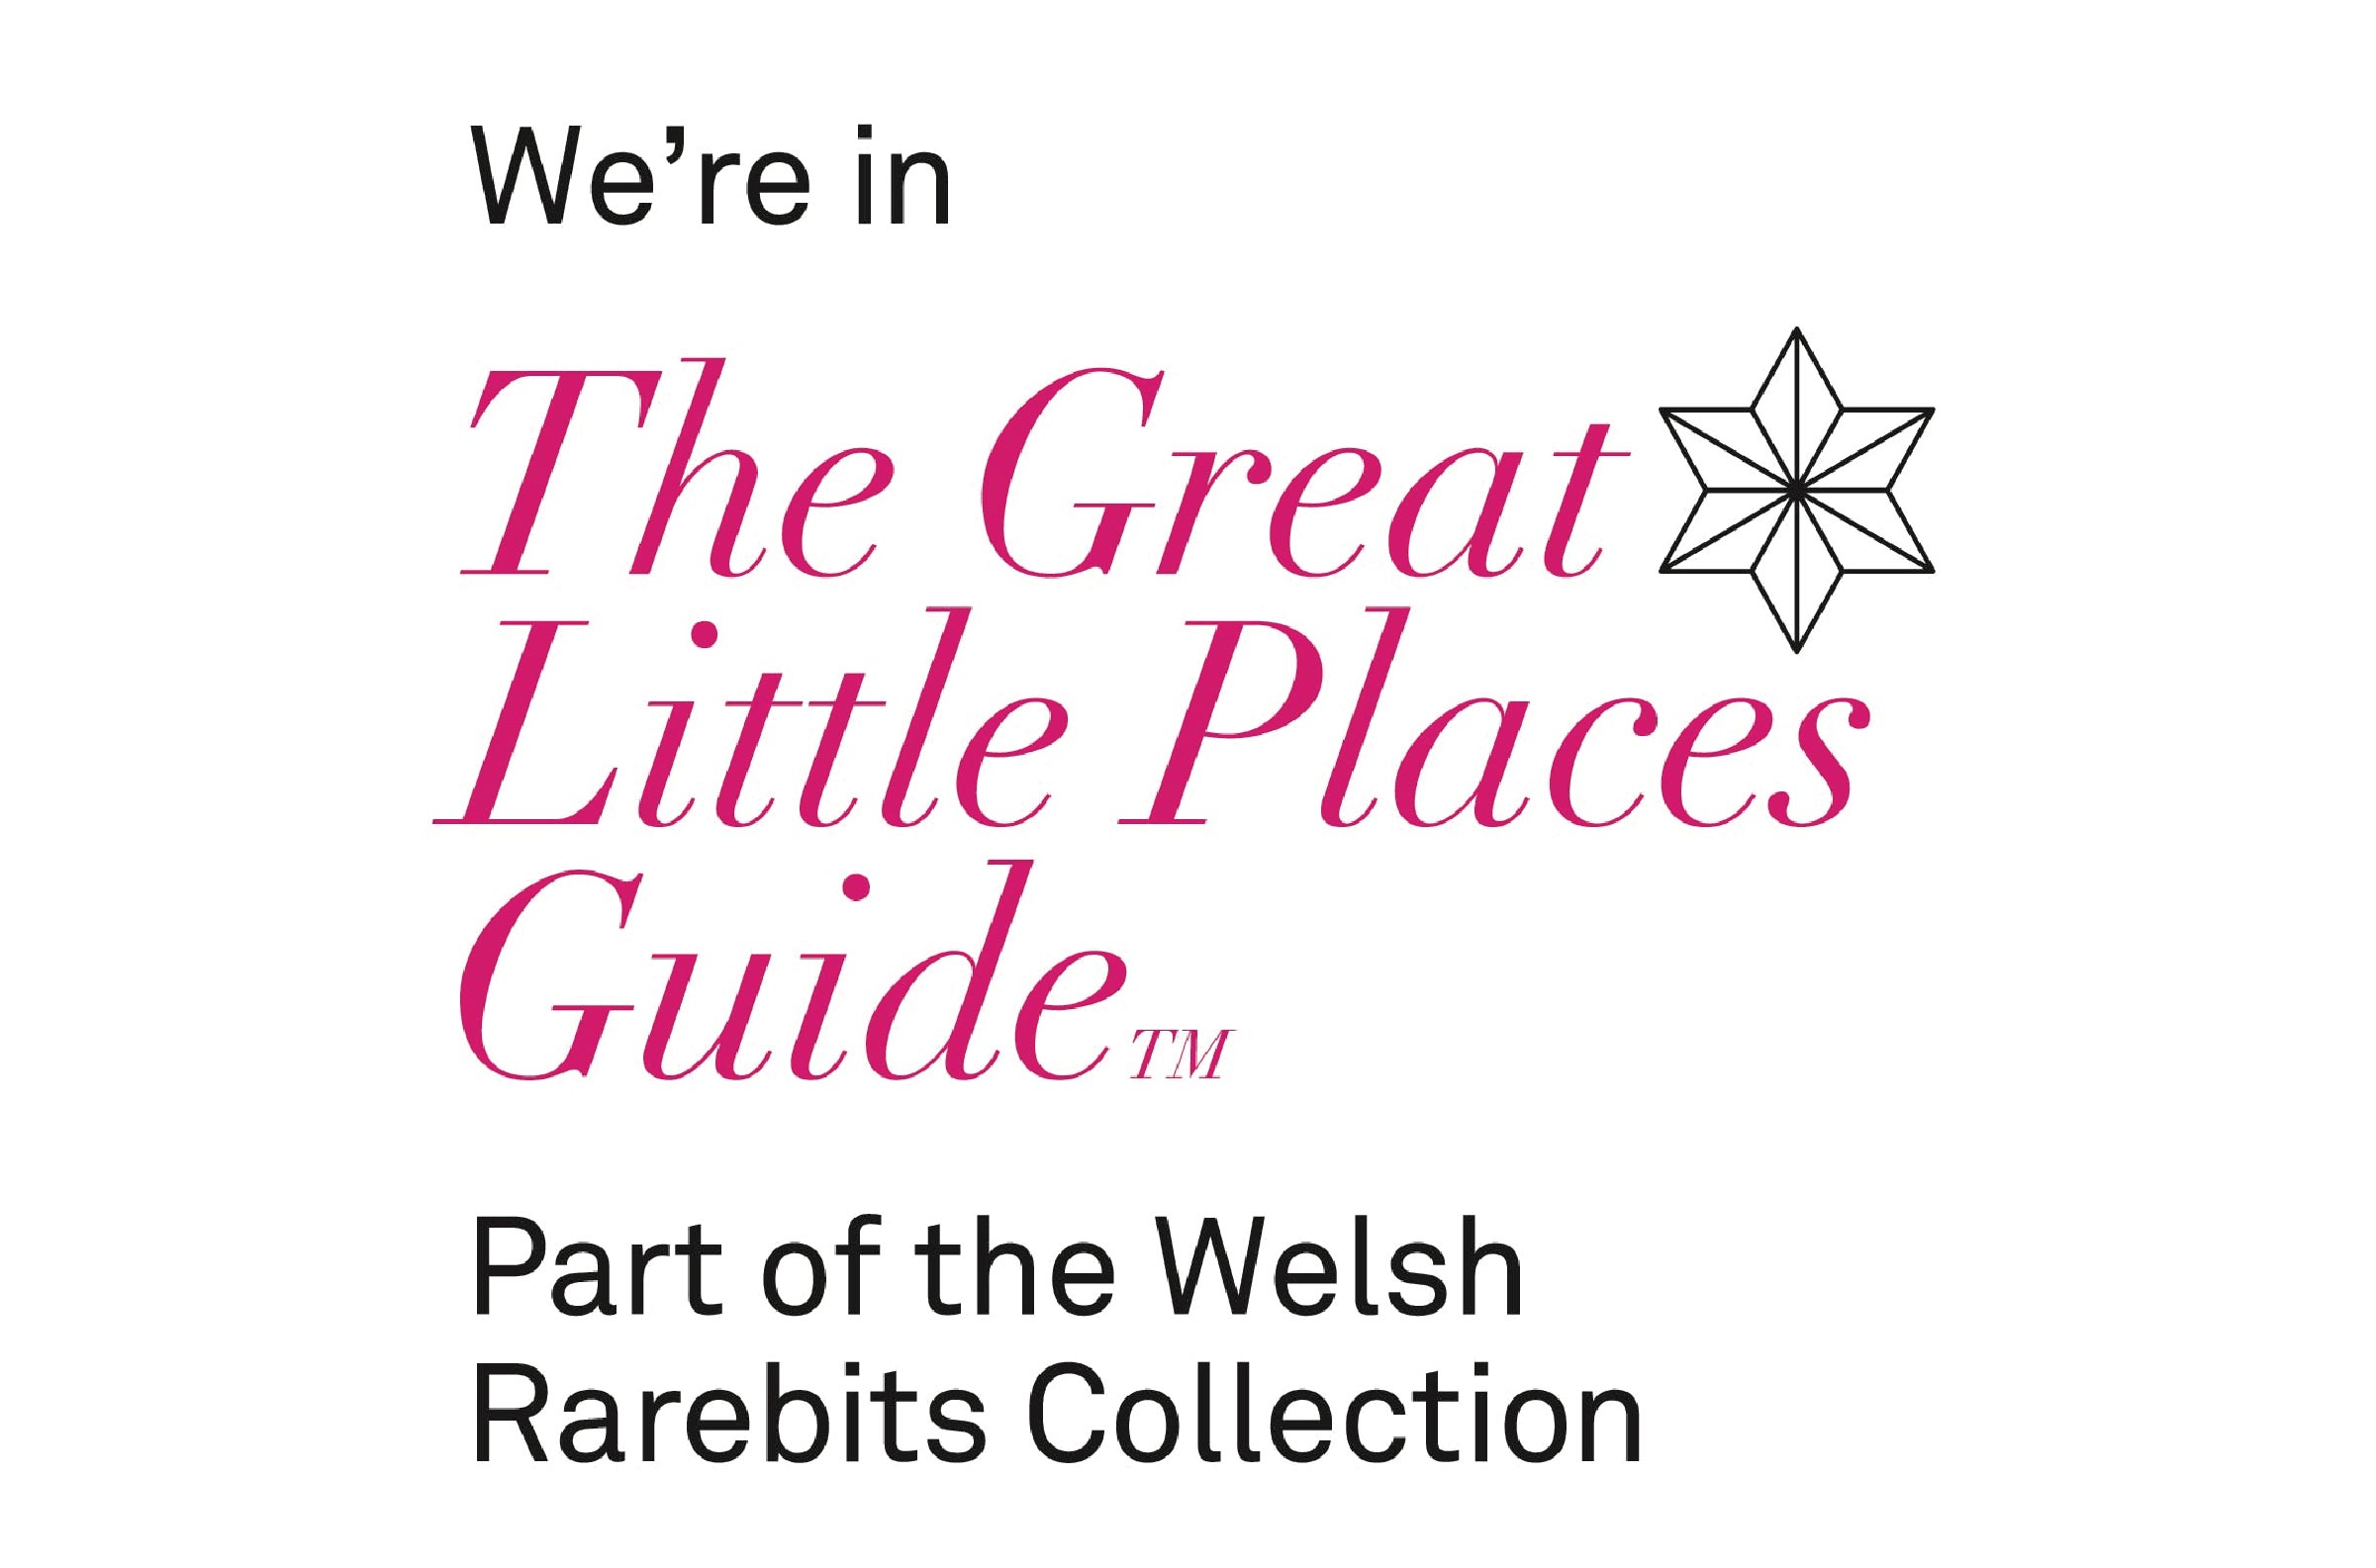 We\'re in The Great Little Places Guide(TM) Part of the Welsh Rarebits Collection